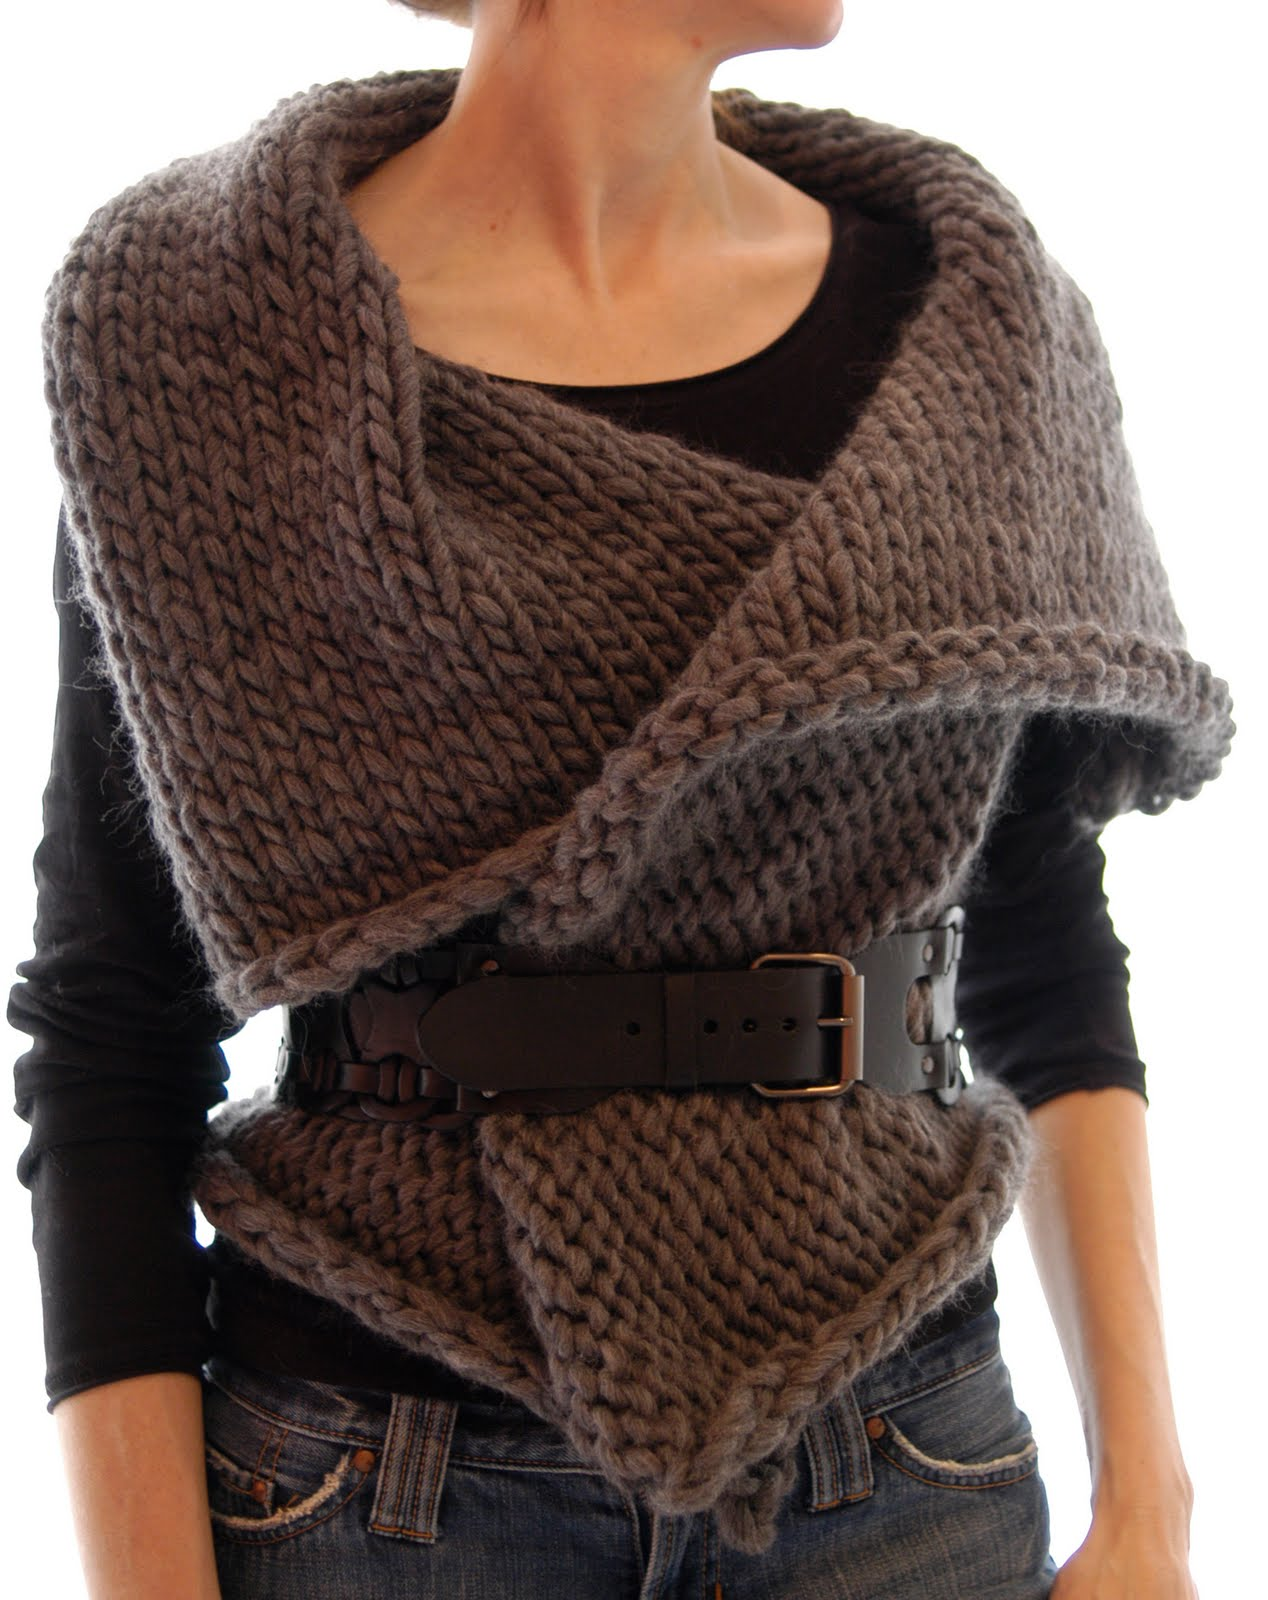 Knitting Pattern Vest : Knit 1 LA: Magnum Reversible Vest/Wrap